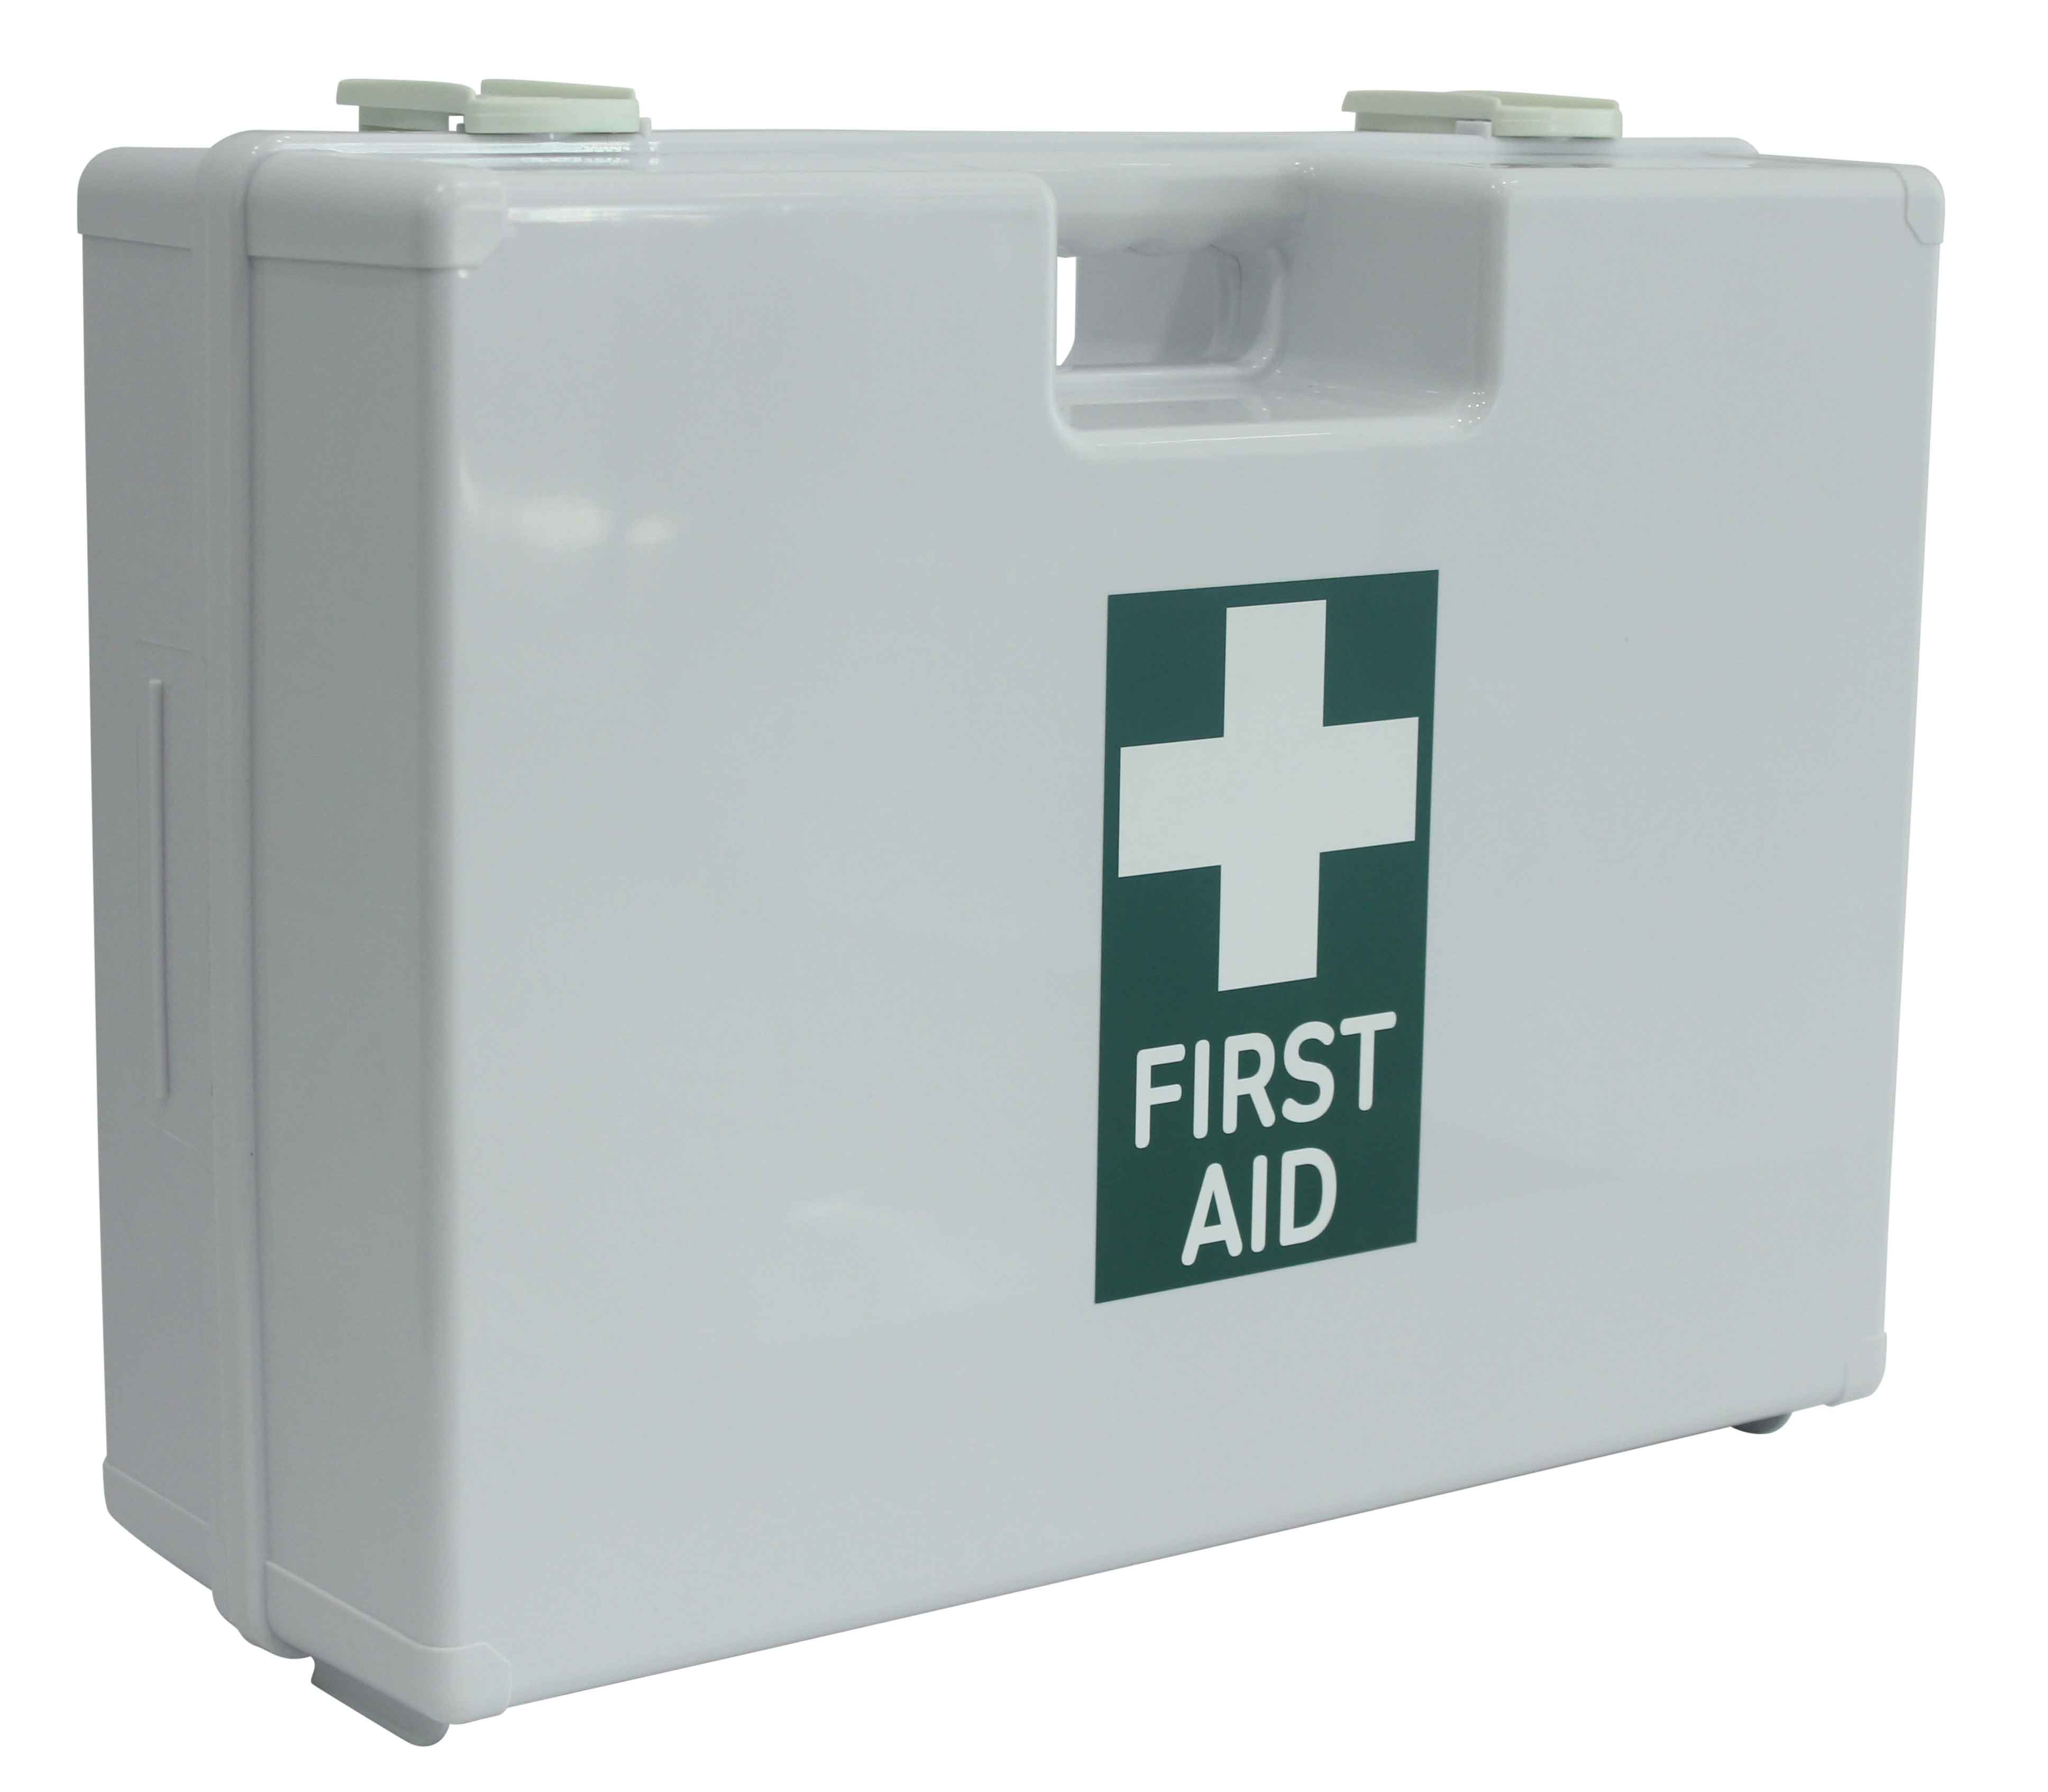 Northrock Safety First Aid Box Empty Plastic First Aid